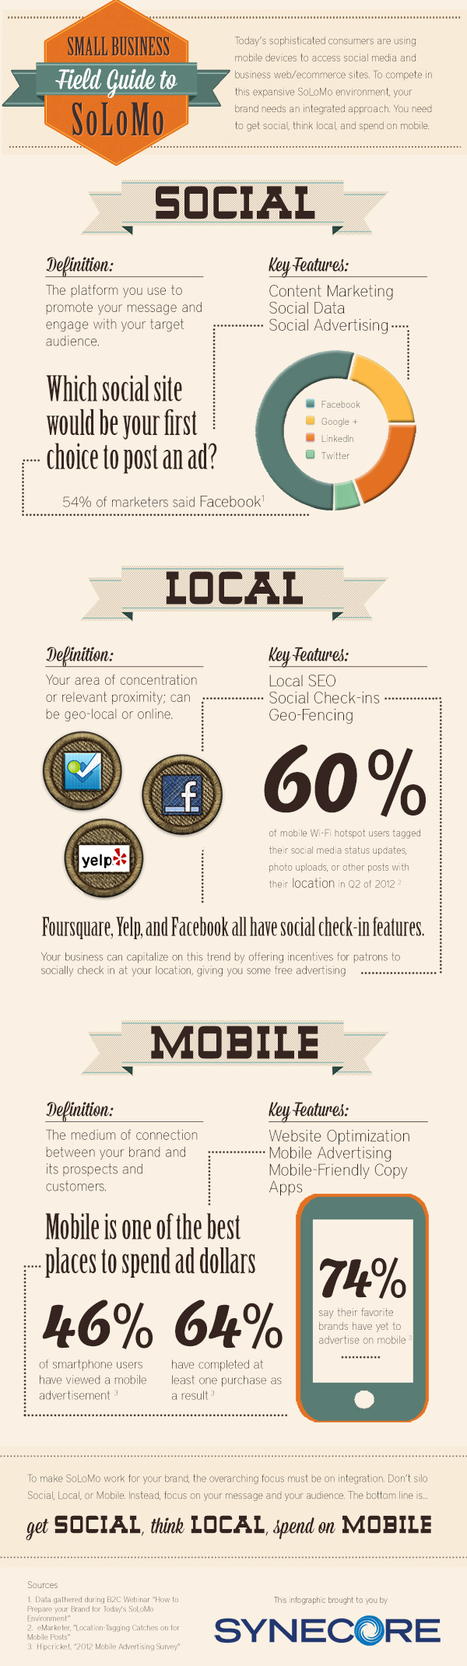 Small Business Field Guide to SoLoMo (Infographic) | visualizing social media | Scoop.it